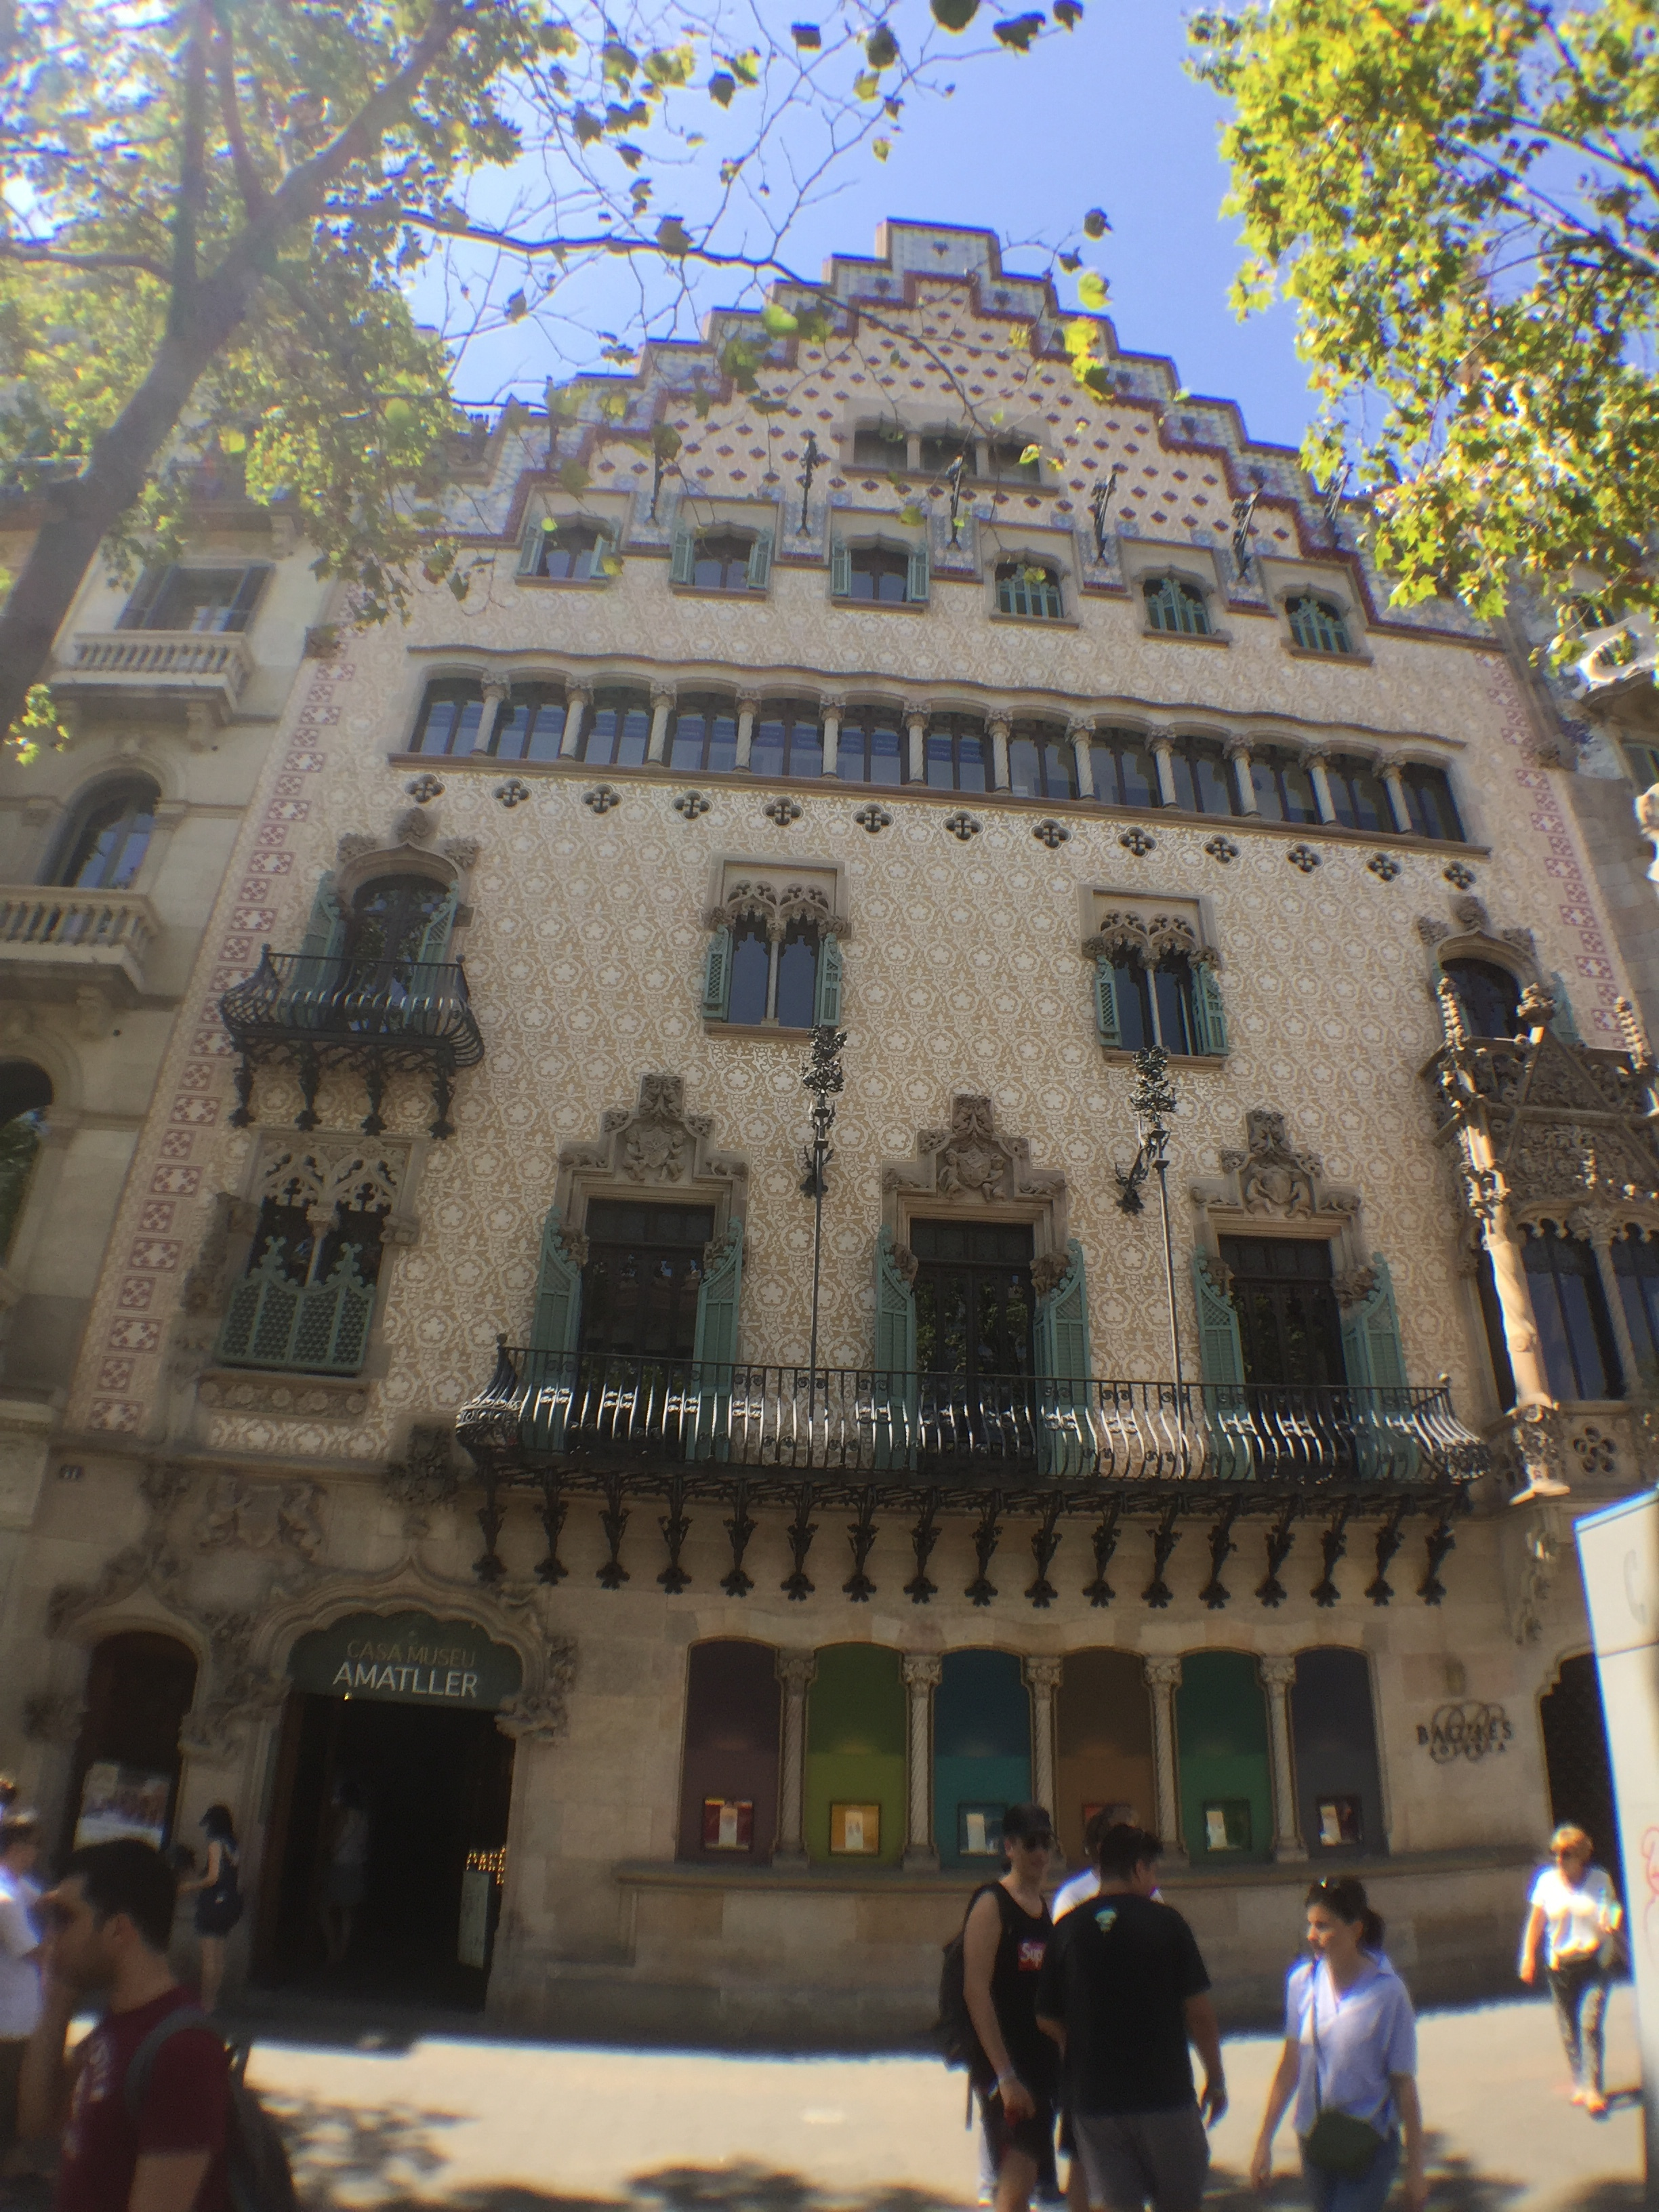 Casa Amatller. If you go inside to the cafe at the back you can see the rear of Casa Battlo